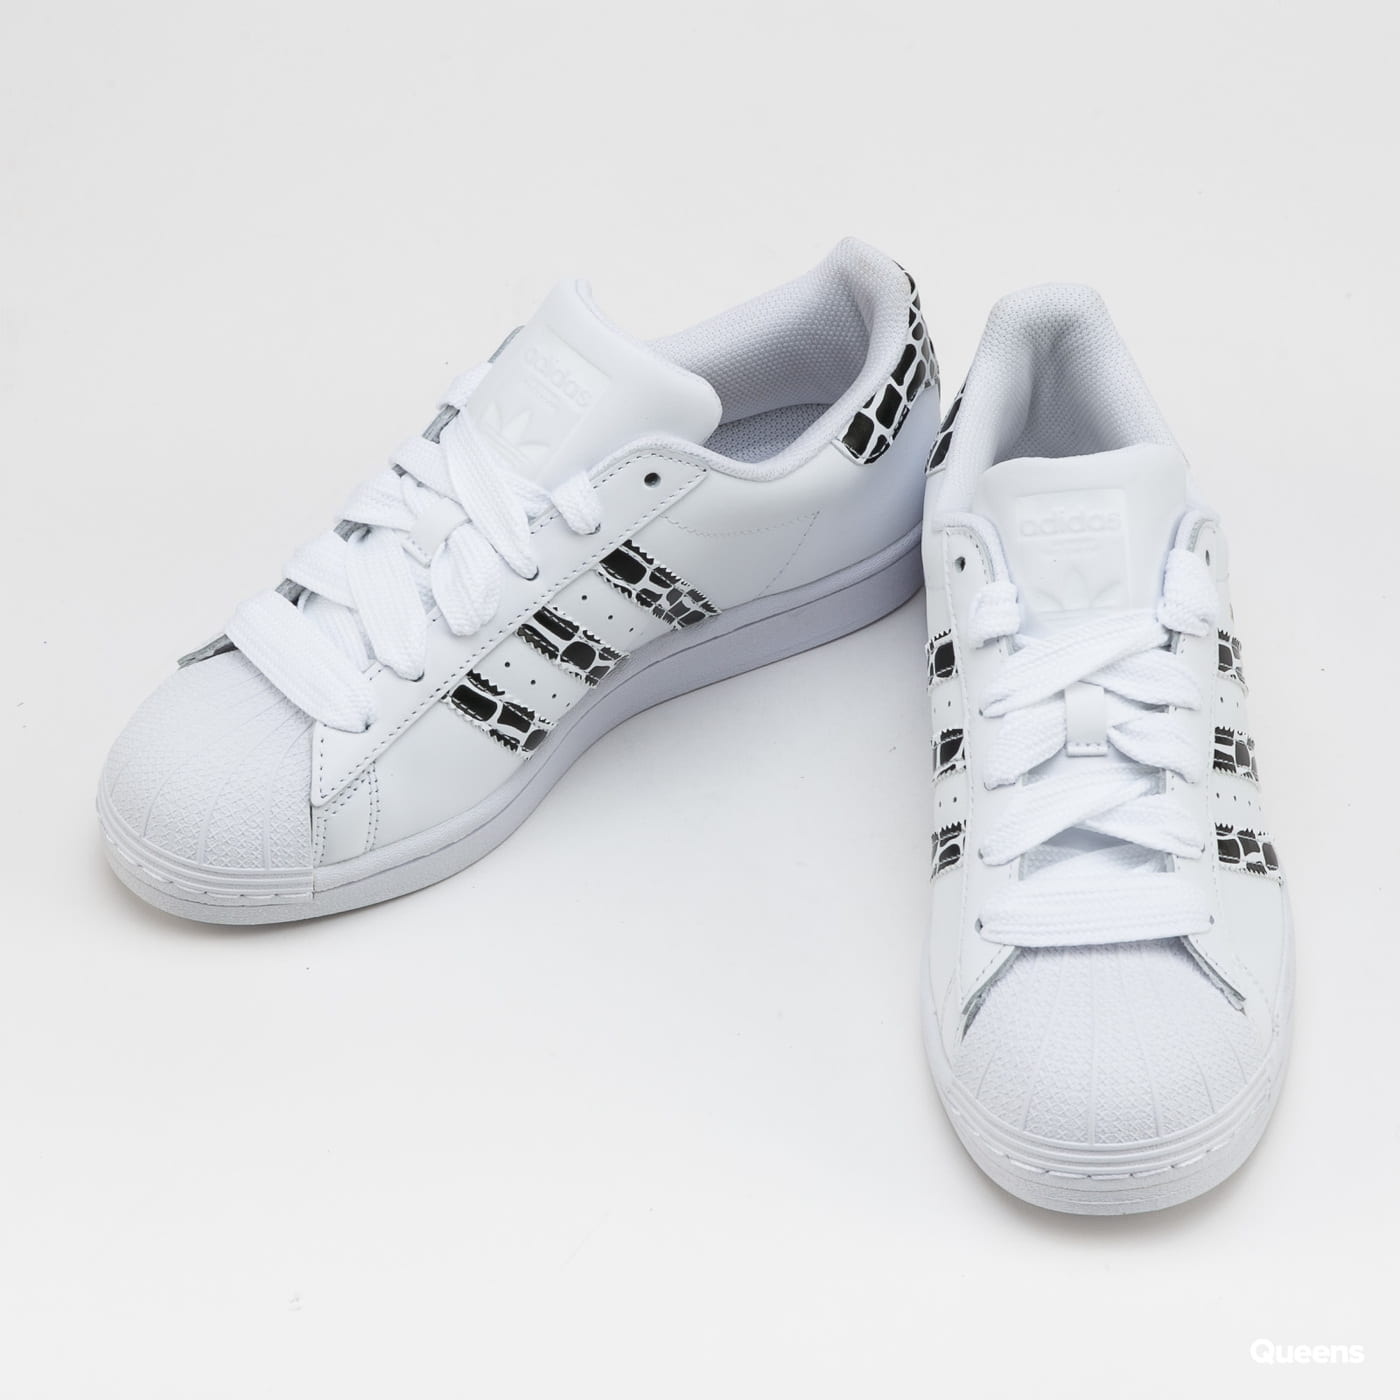 adidas Originals Superstar W ftwwht / goldmt / cblack